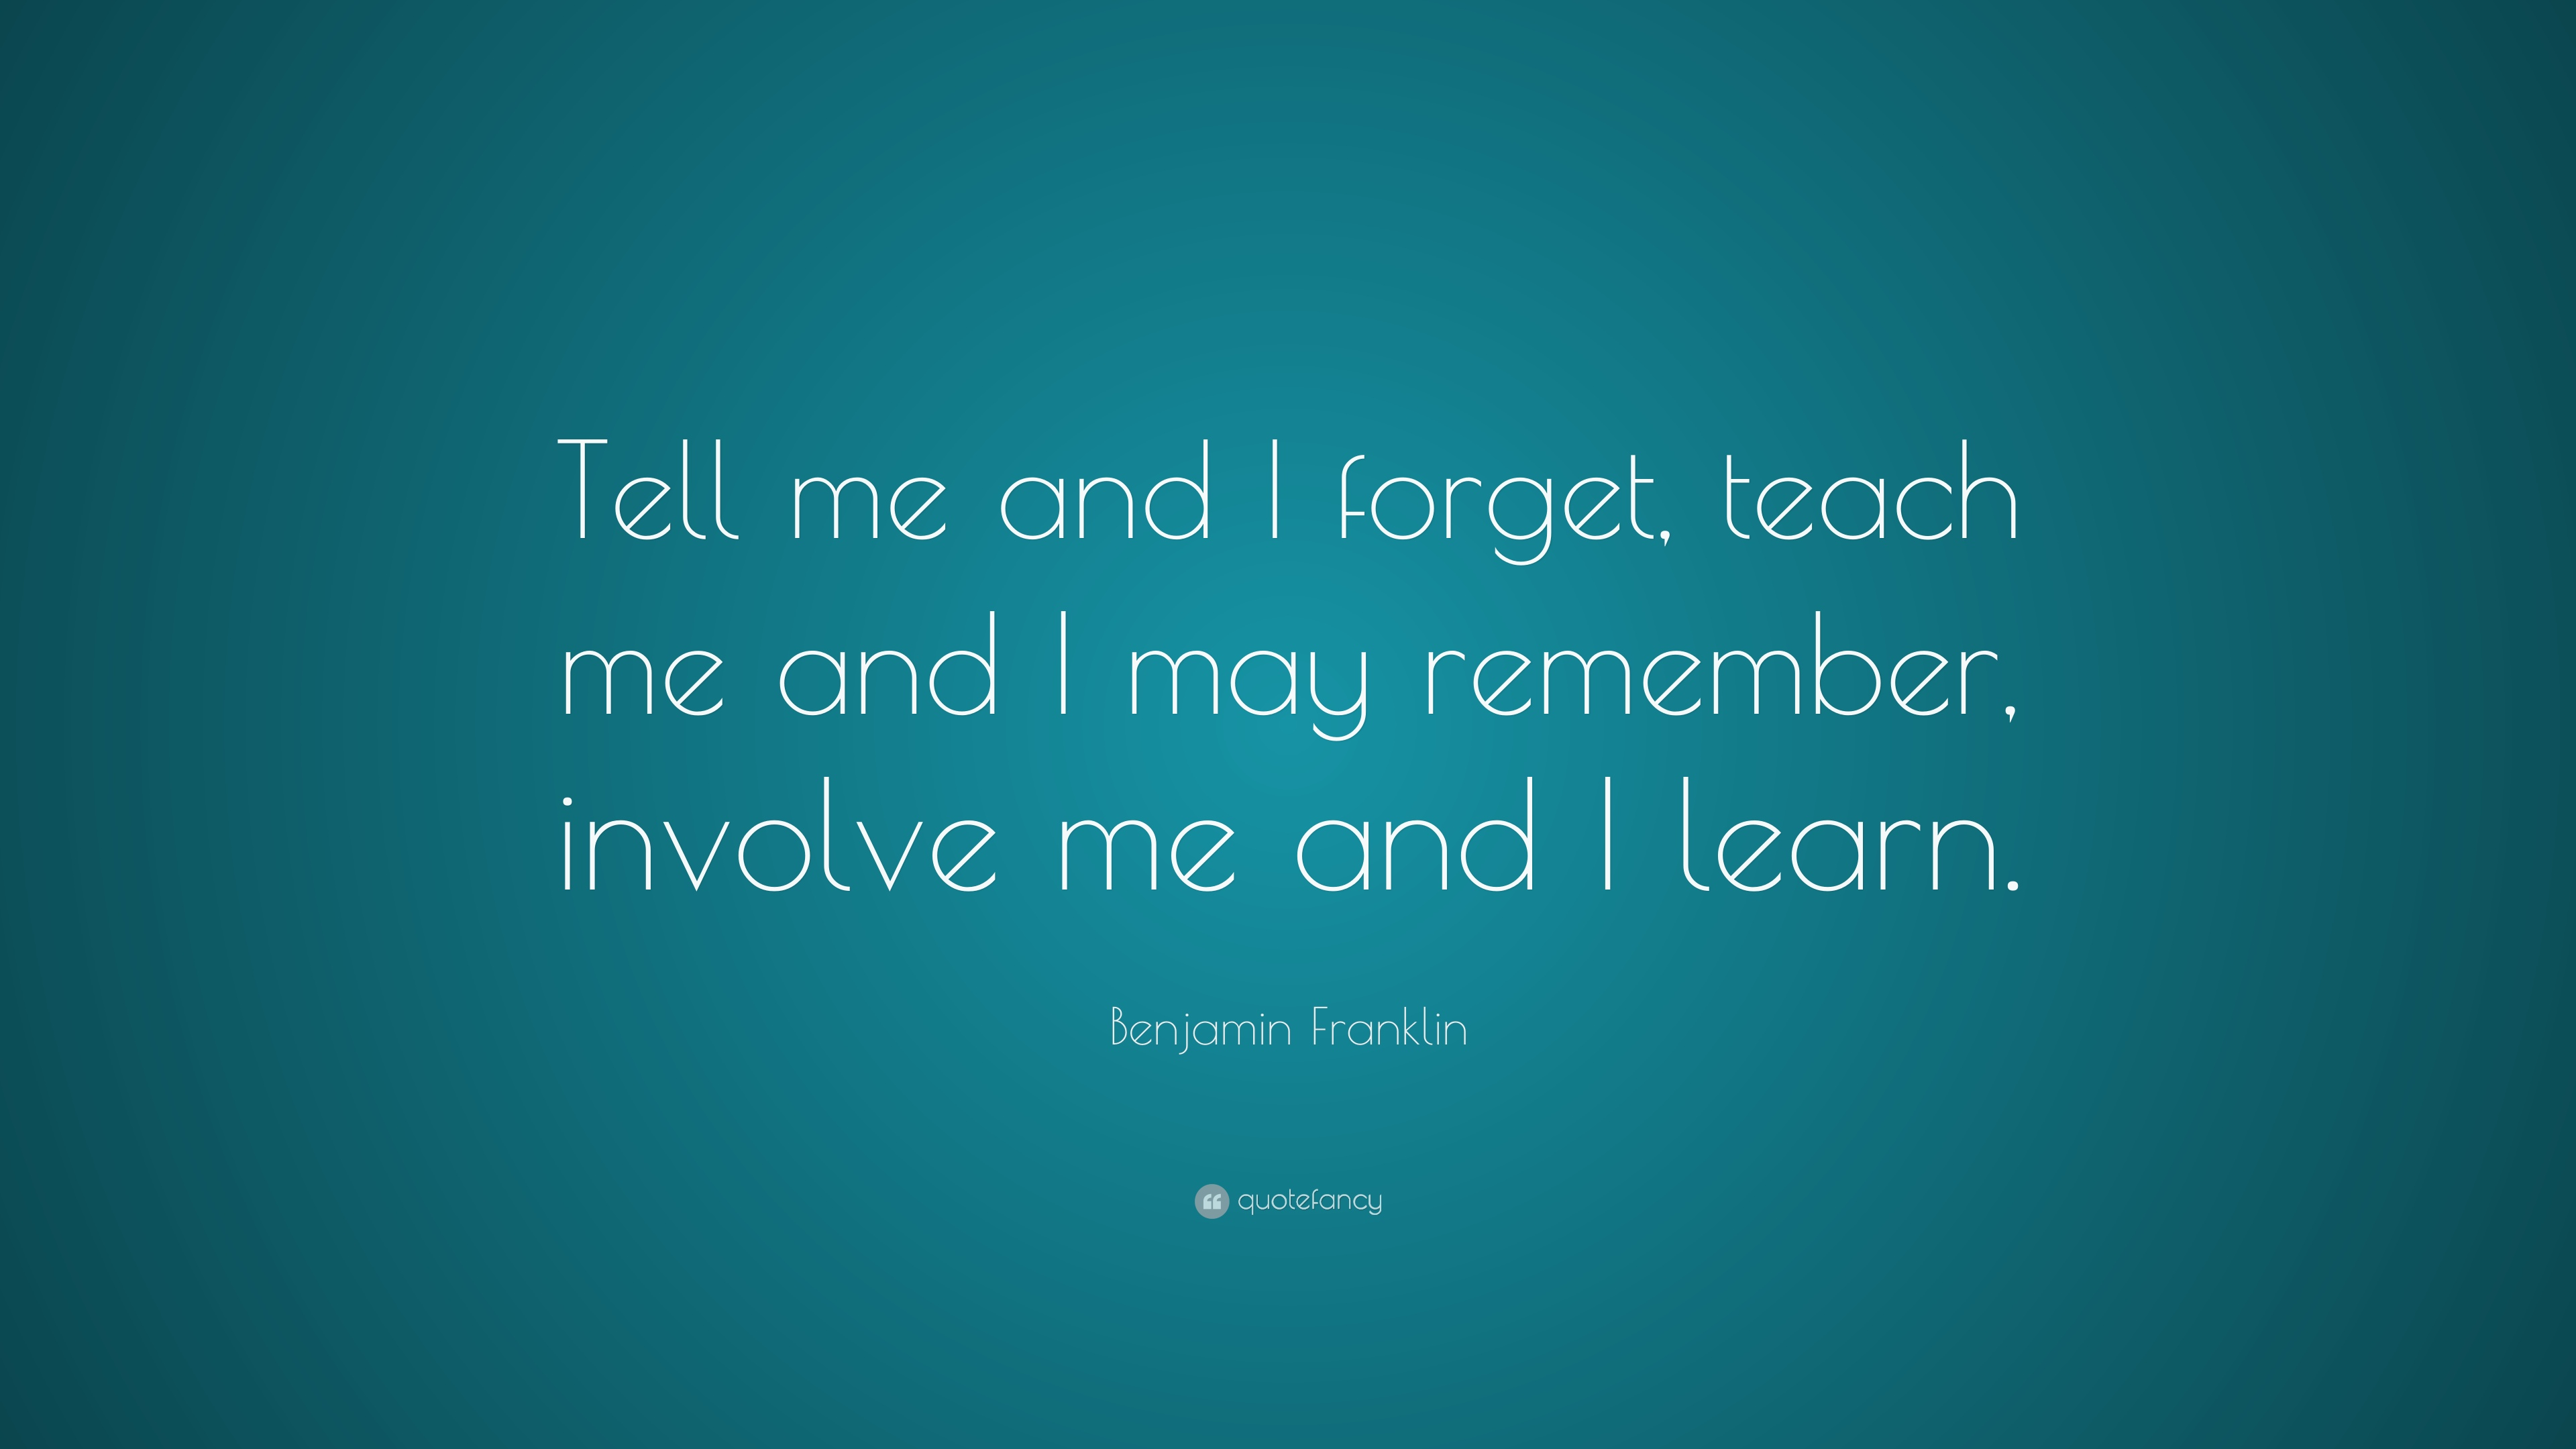 Persistence Quotes Wallpapers Benjamin Franklin Quote Tell Me And I Forget Teach Me